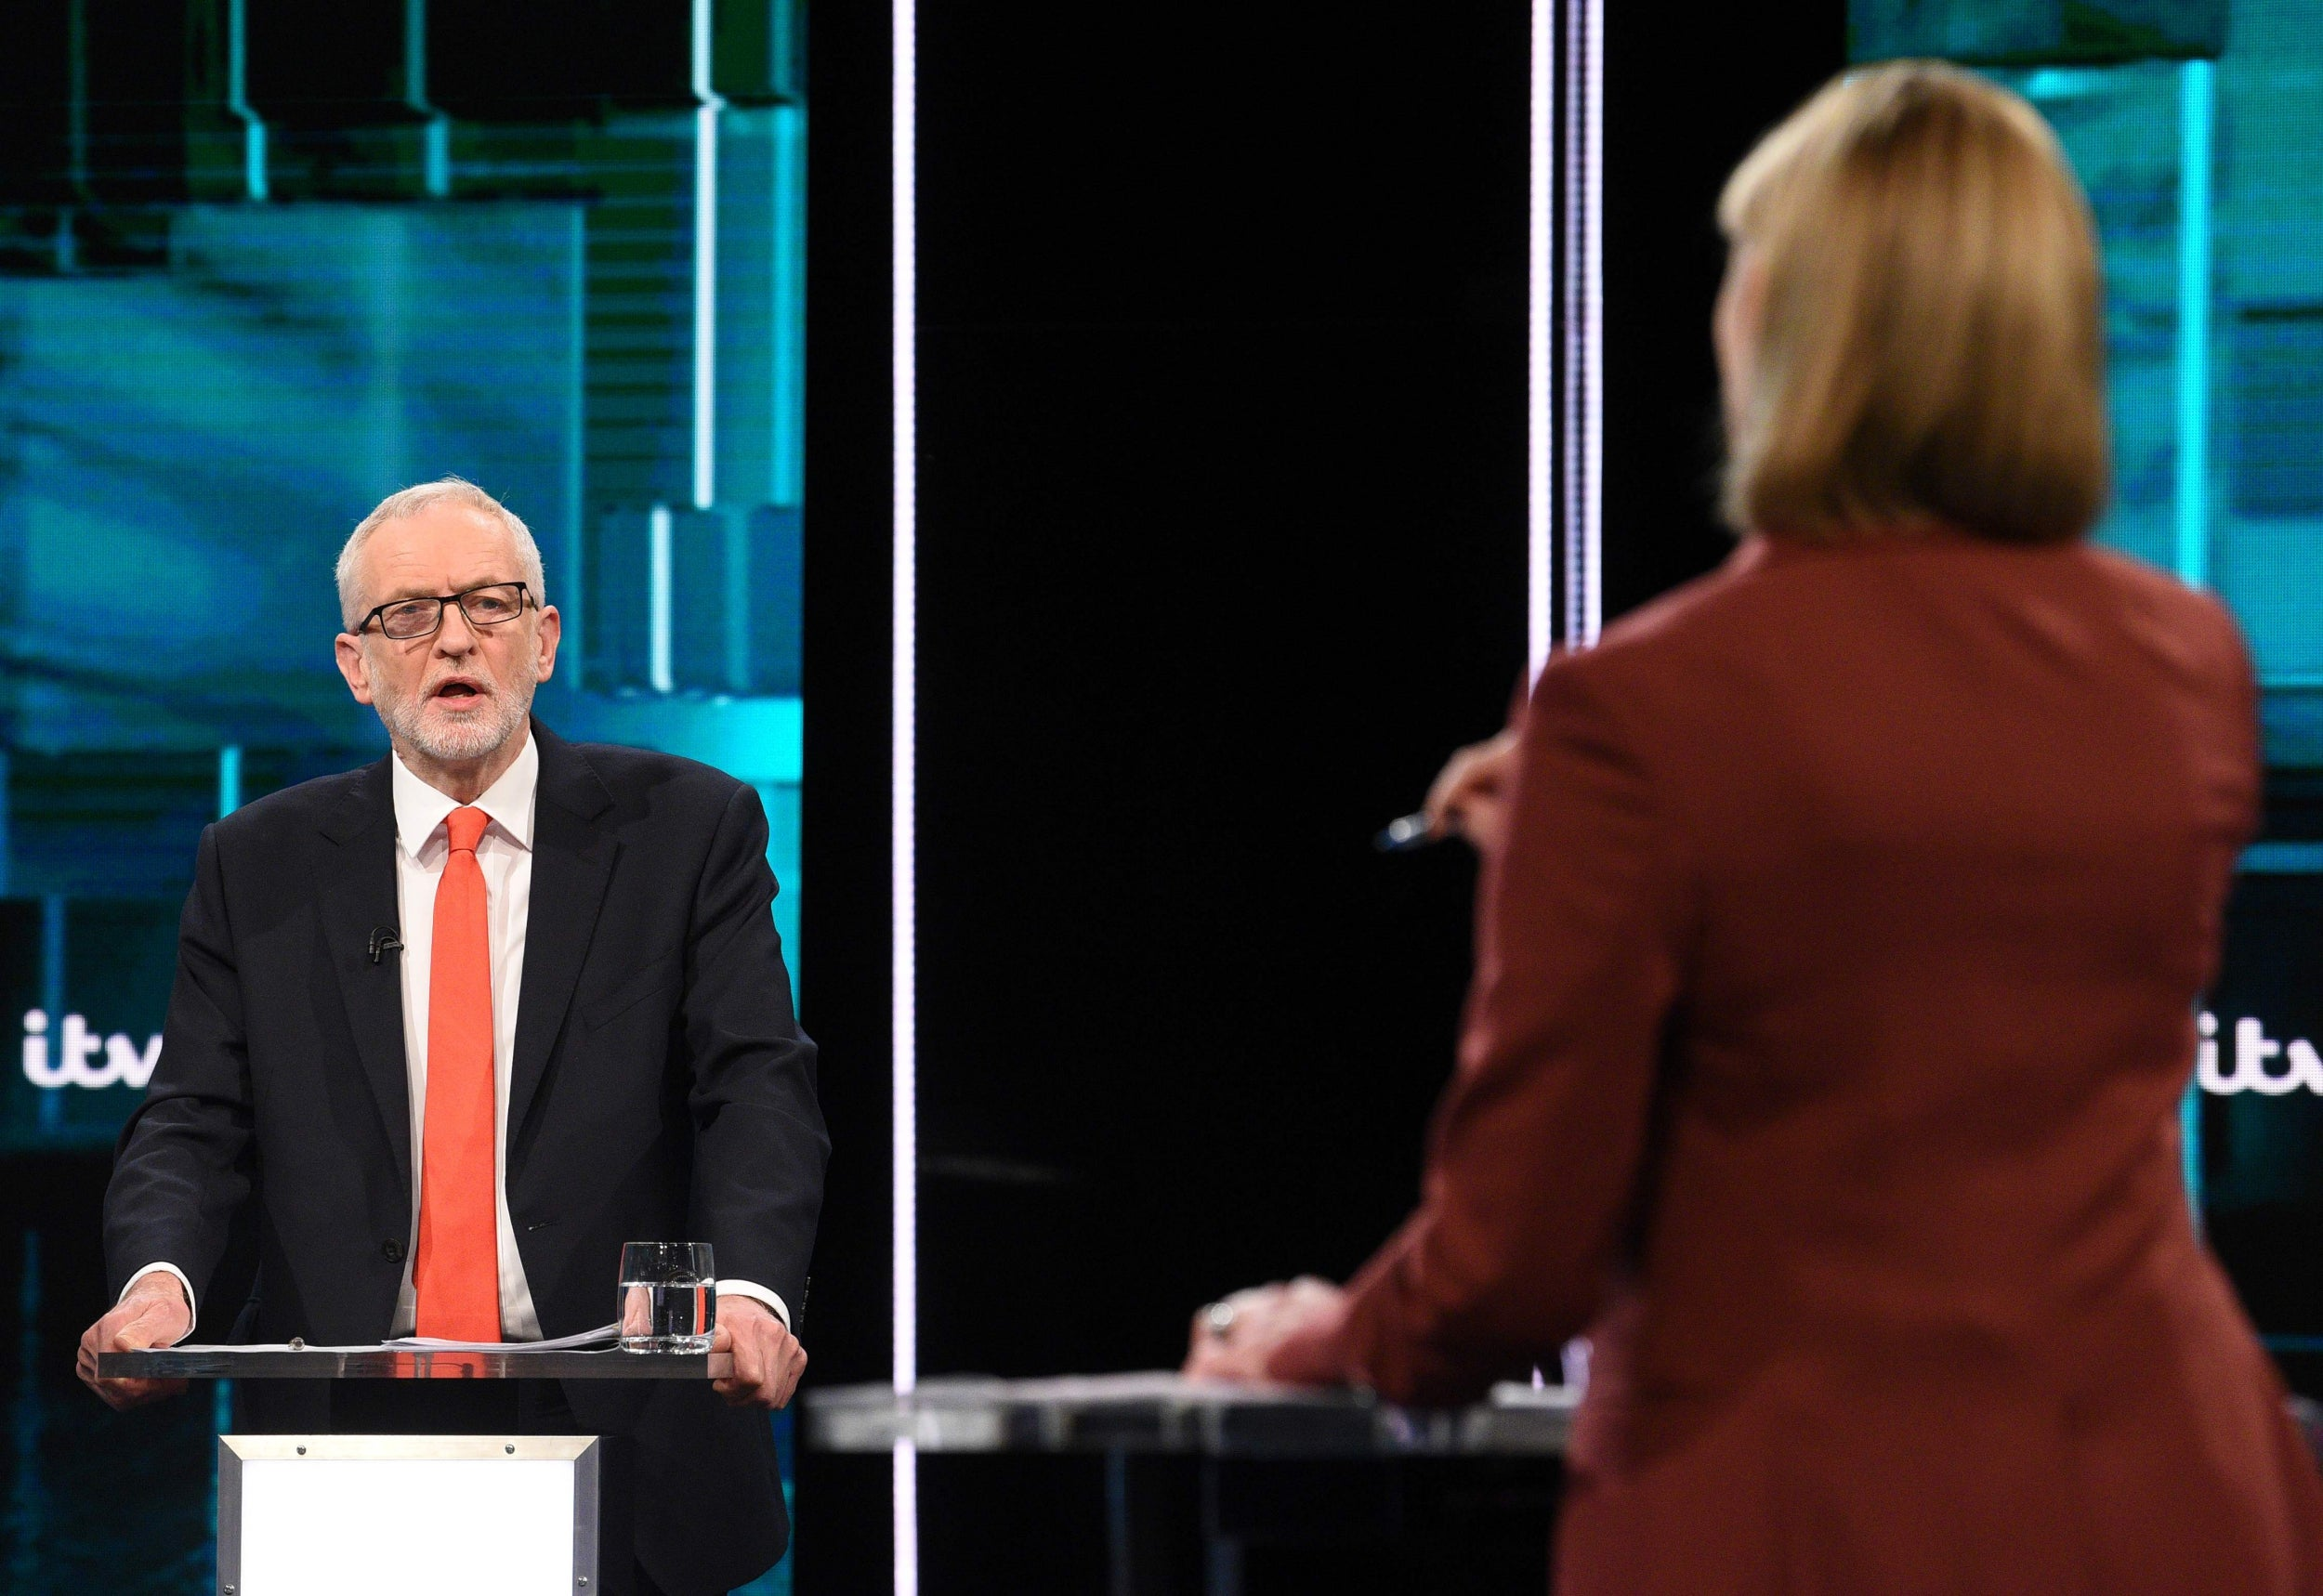 Election debate: Corbyn says monarchy needs 'improvement' as leaders face questions on Prince Andrew